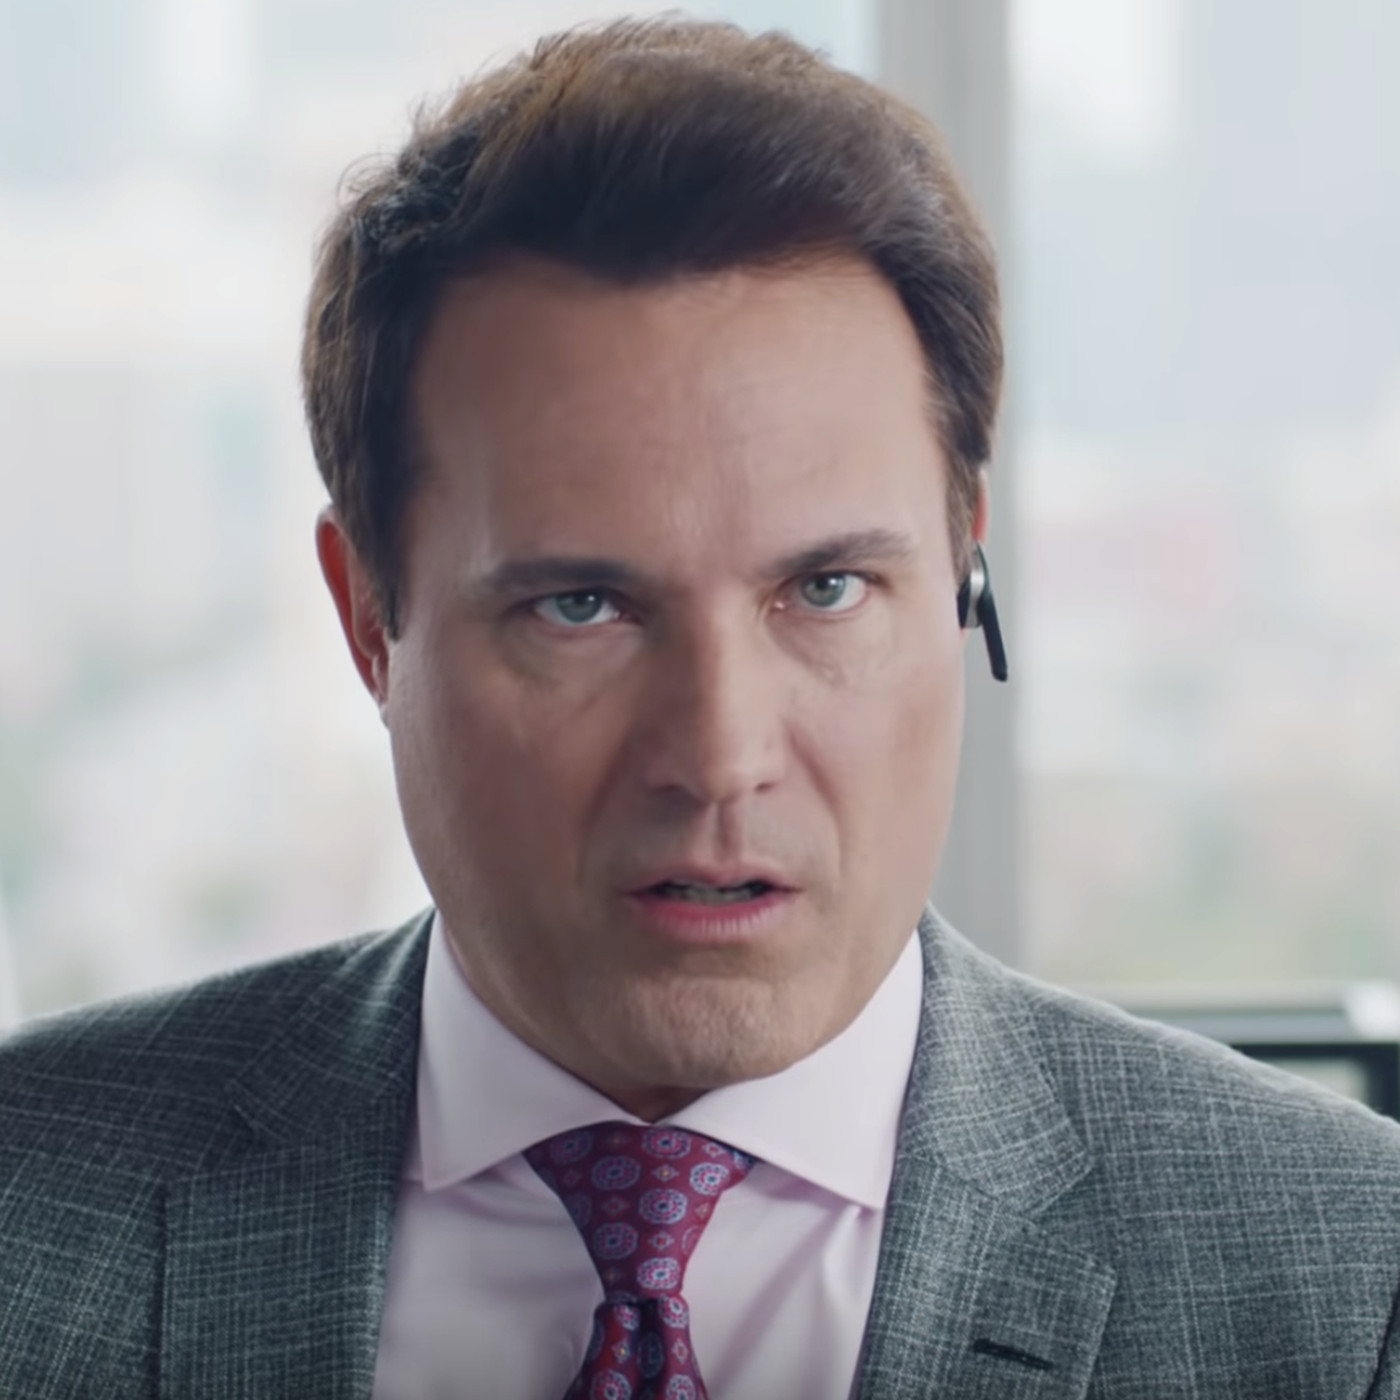 Aaron Rodgers Agent In The State Farm Ads Is The Worst Character On Tv Sbnation Com